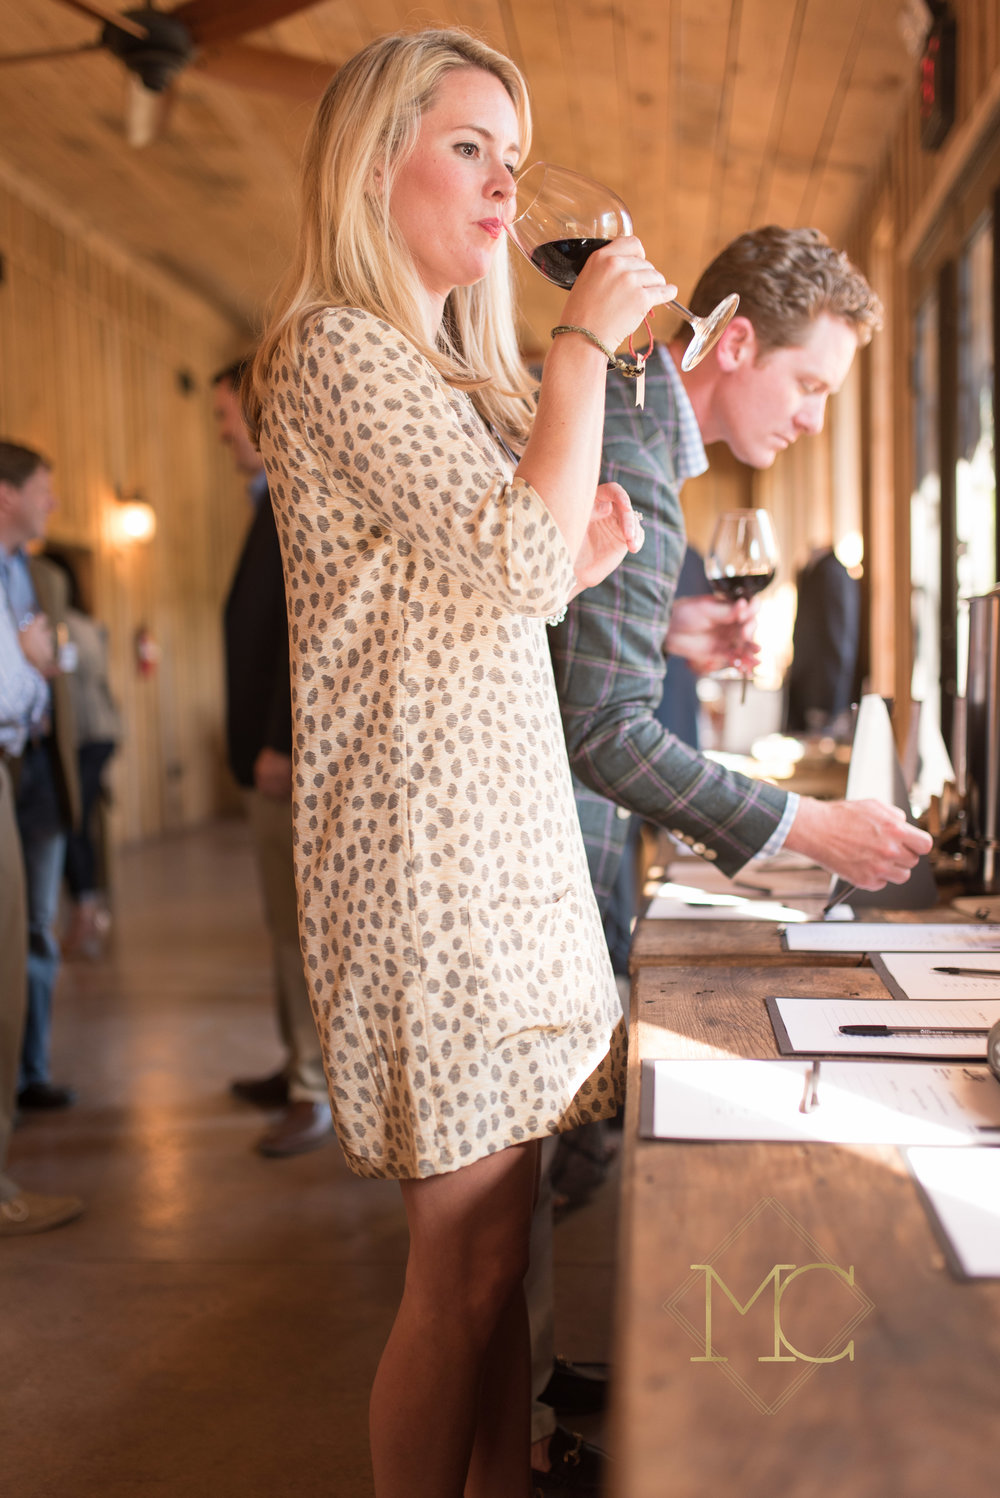 image from multiple sclerosis fall crush nashville event drinking wine and bidding on auction items